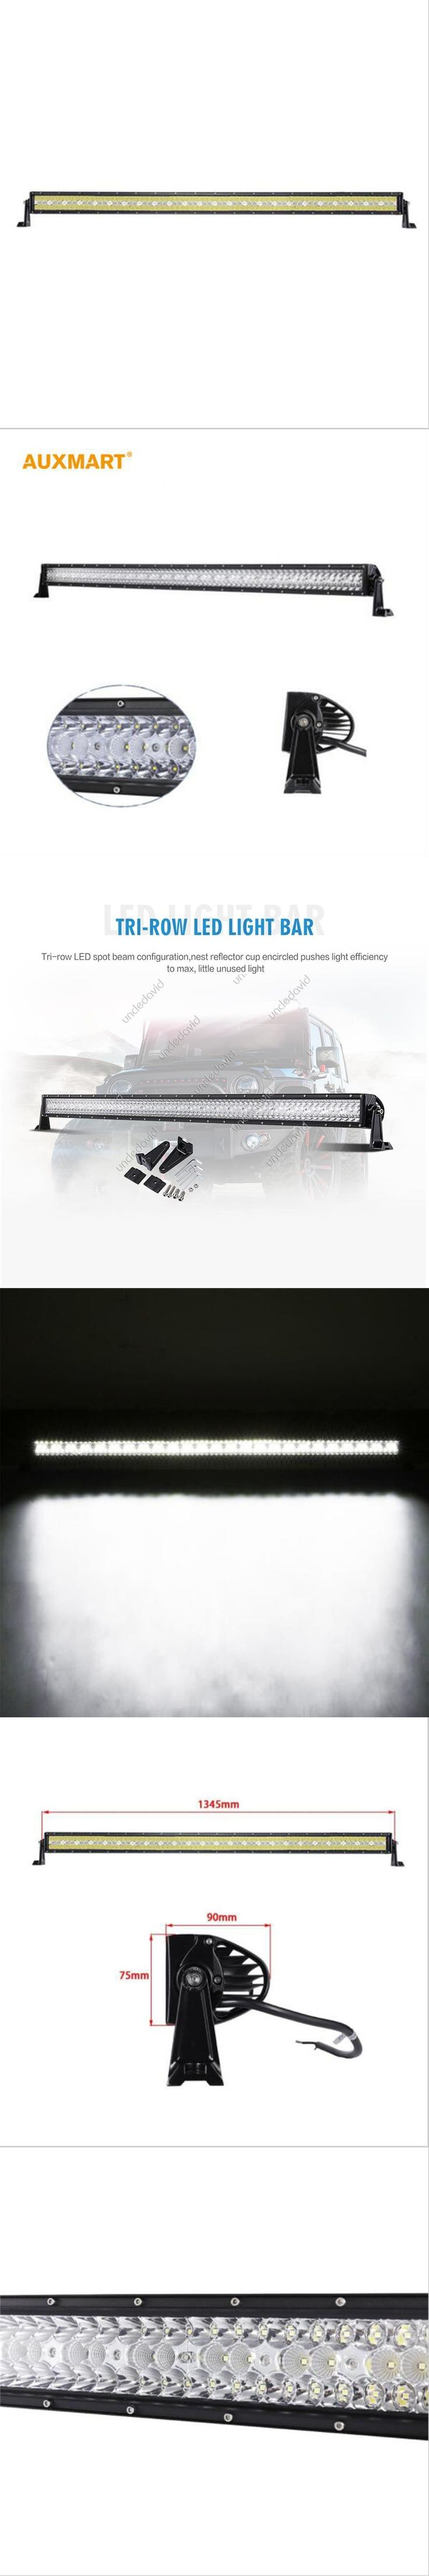 """Auxmart 50"""" LED Car Light Bar 3 Row 576W Offroad Driving Combo Beams fit Pickup Tractor Truck SUV ATV 4X4 Wagon jeep"""